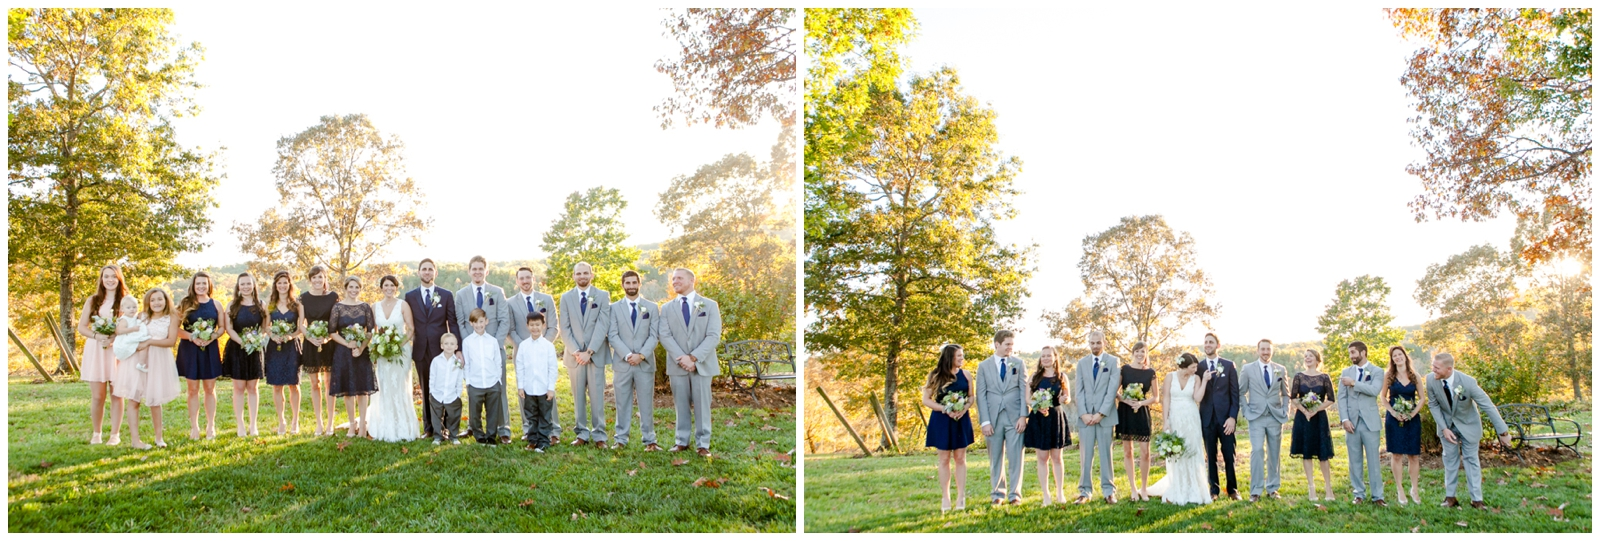 R&G_AtlantaWeddingPhotographer_WhiteOaksBarn_0020